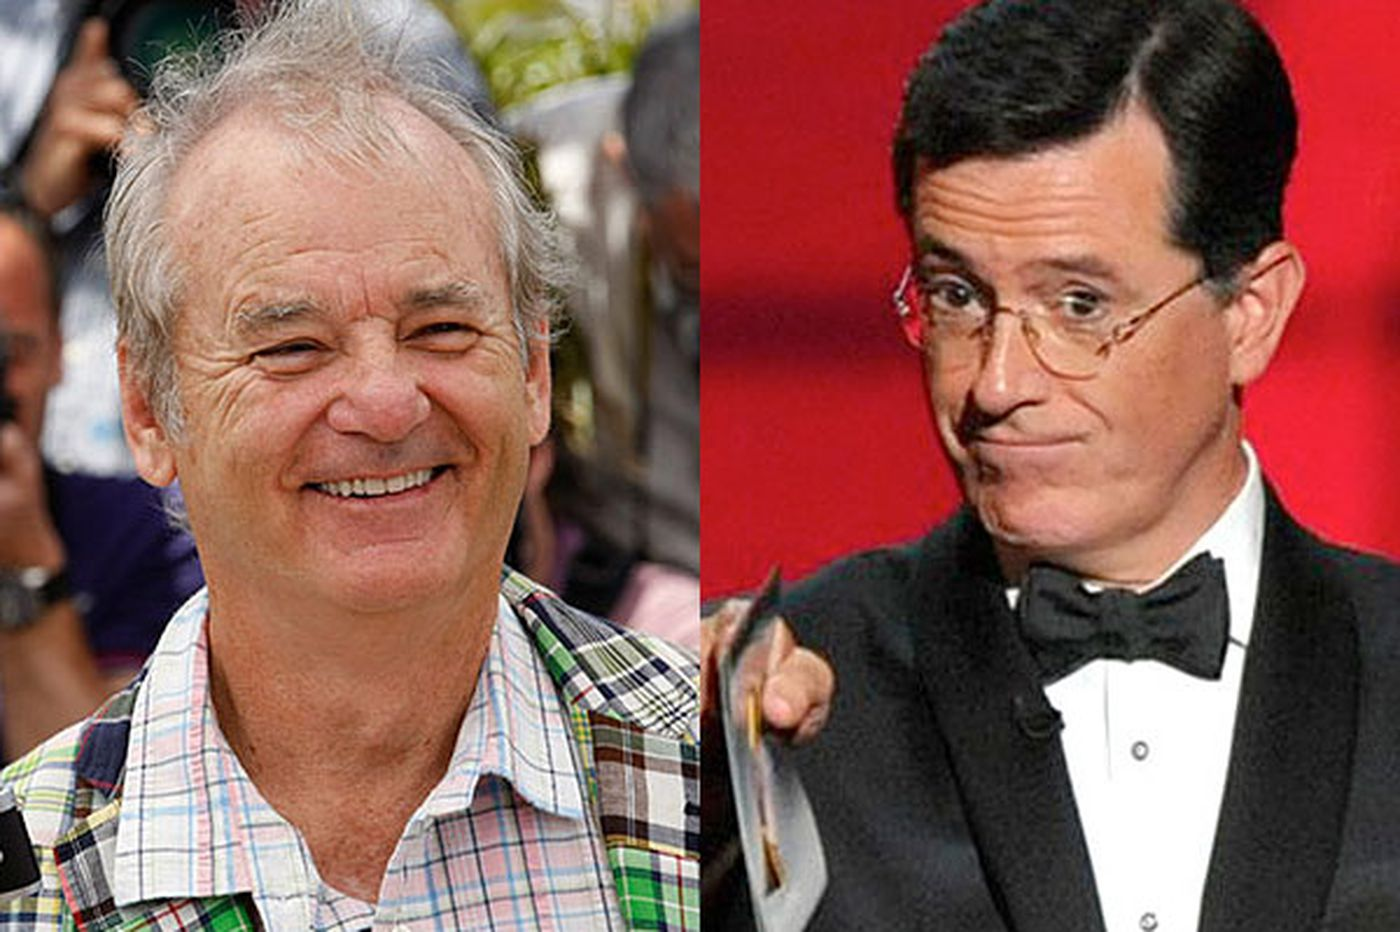 Sideshow: Bill Murray, Stephen Colbert: A Twitter hit and miss